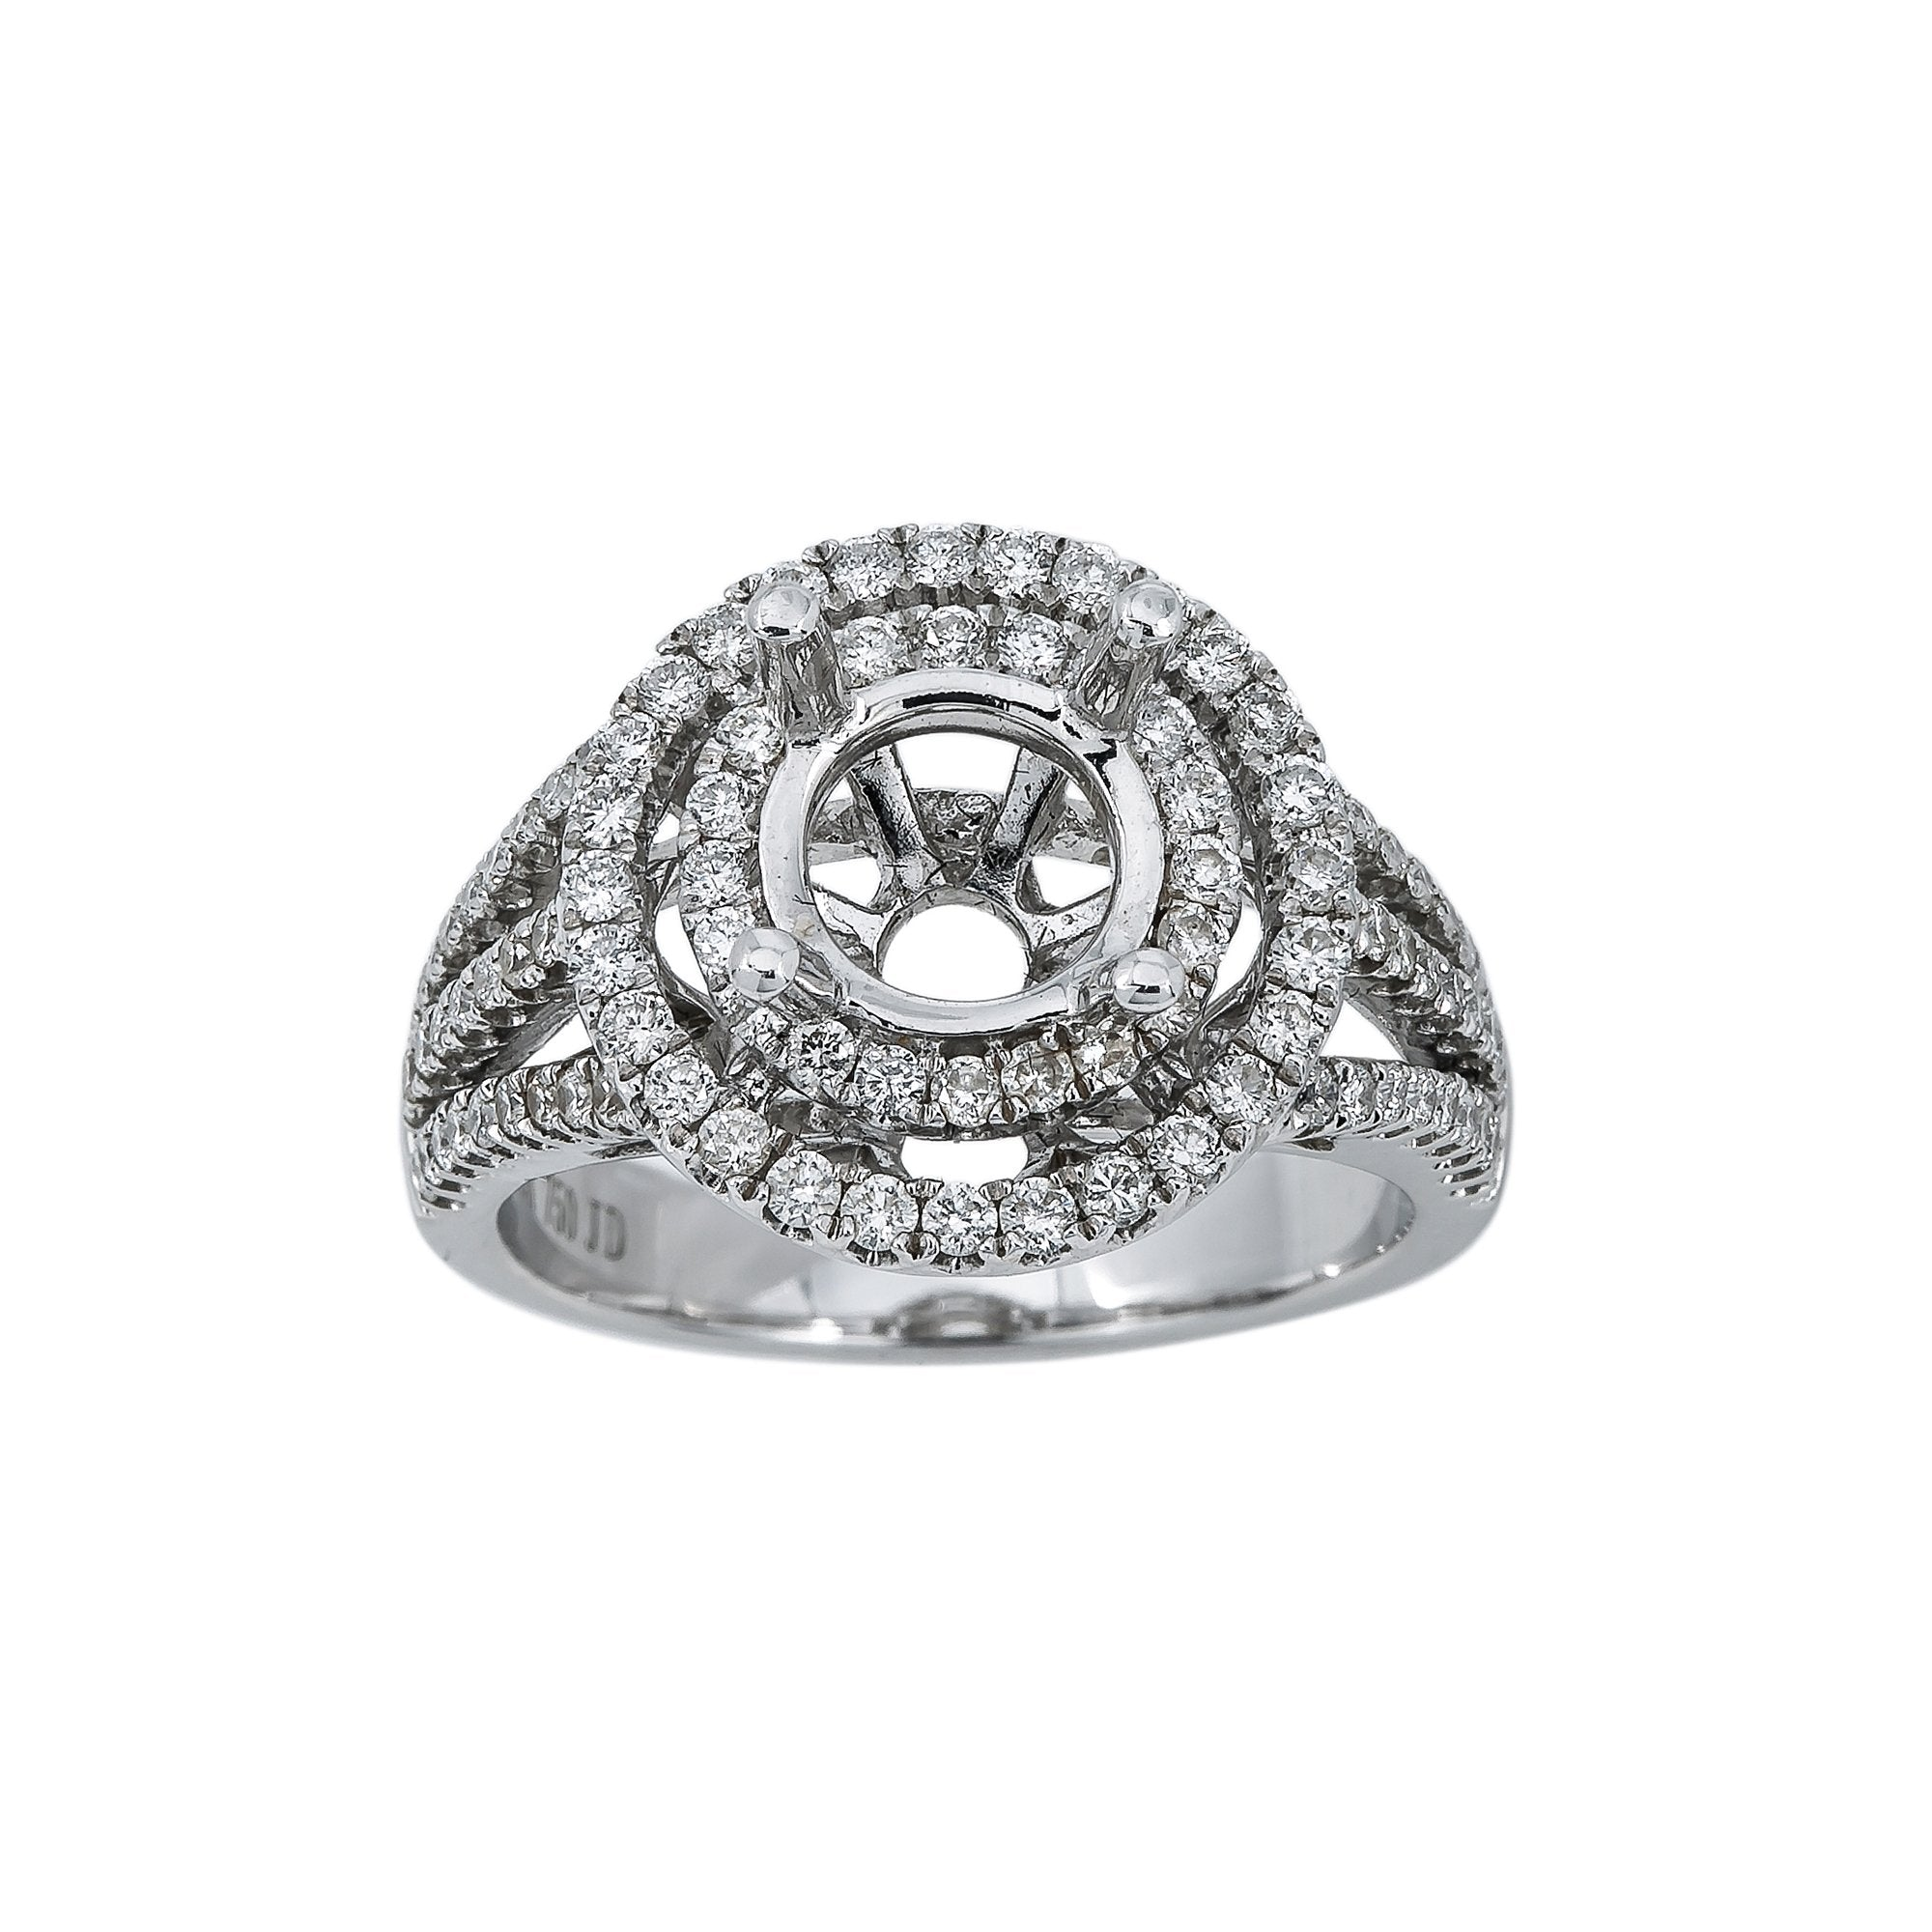 18K White Gold BJ7516R Women's Ring With 1.00 CT Diamonds